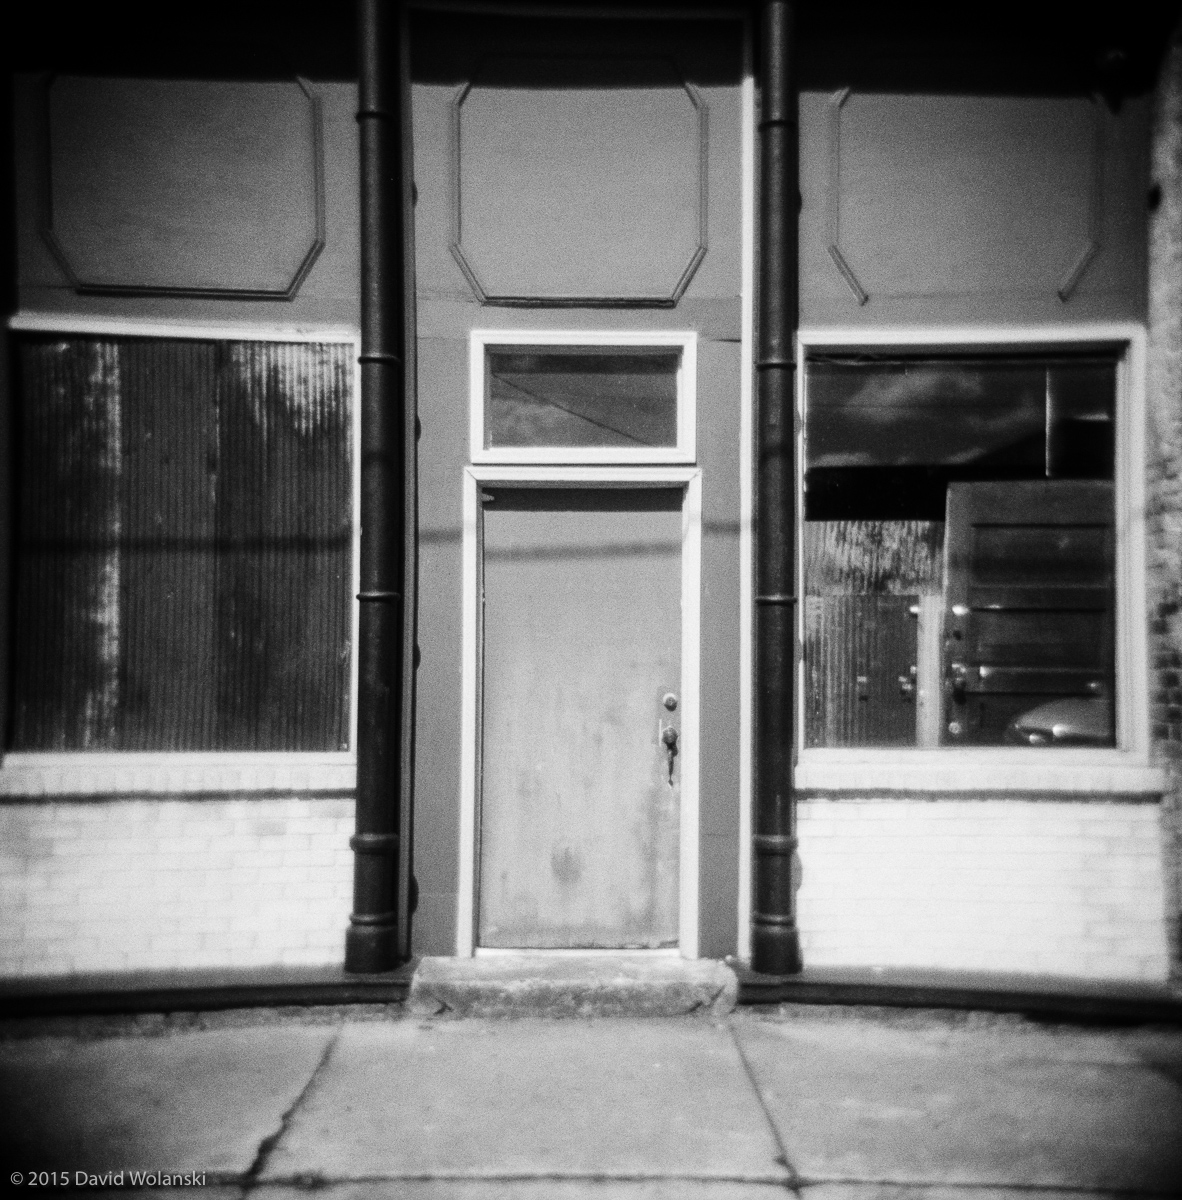 holga film photos of a doorway